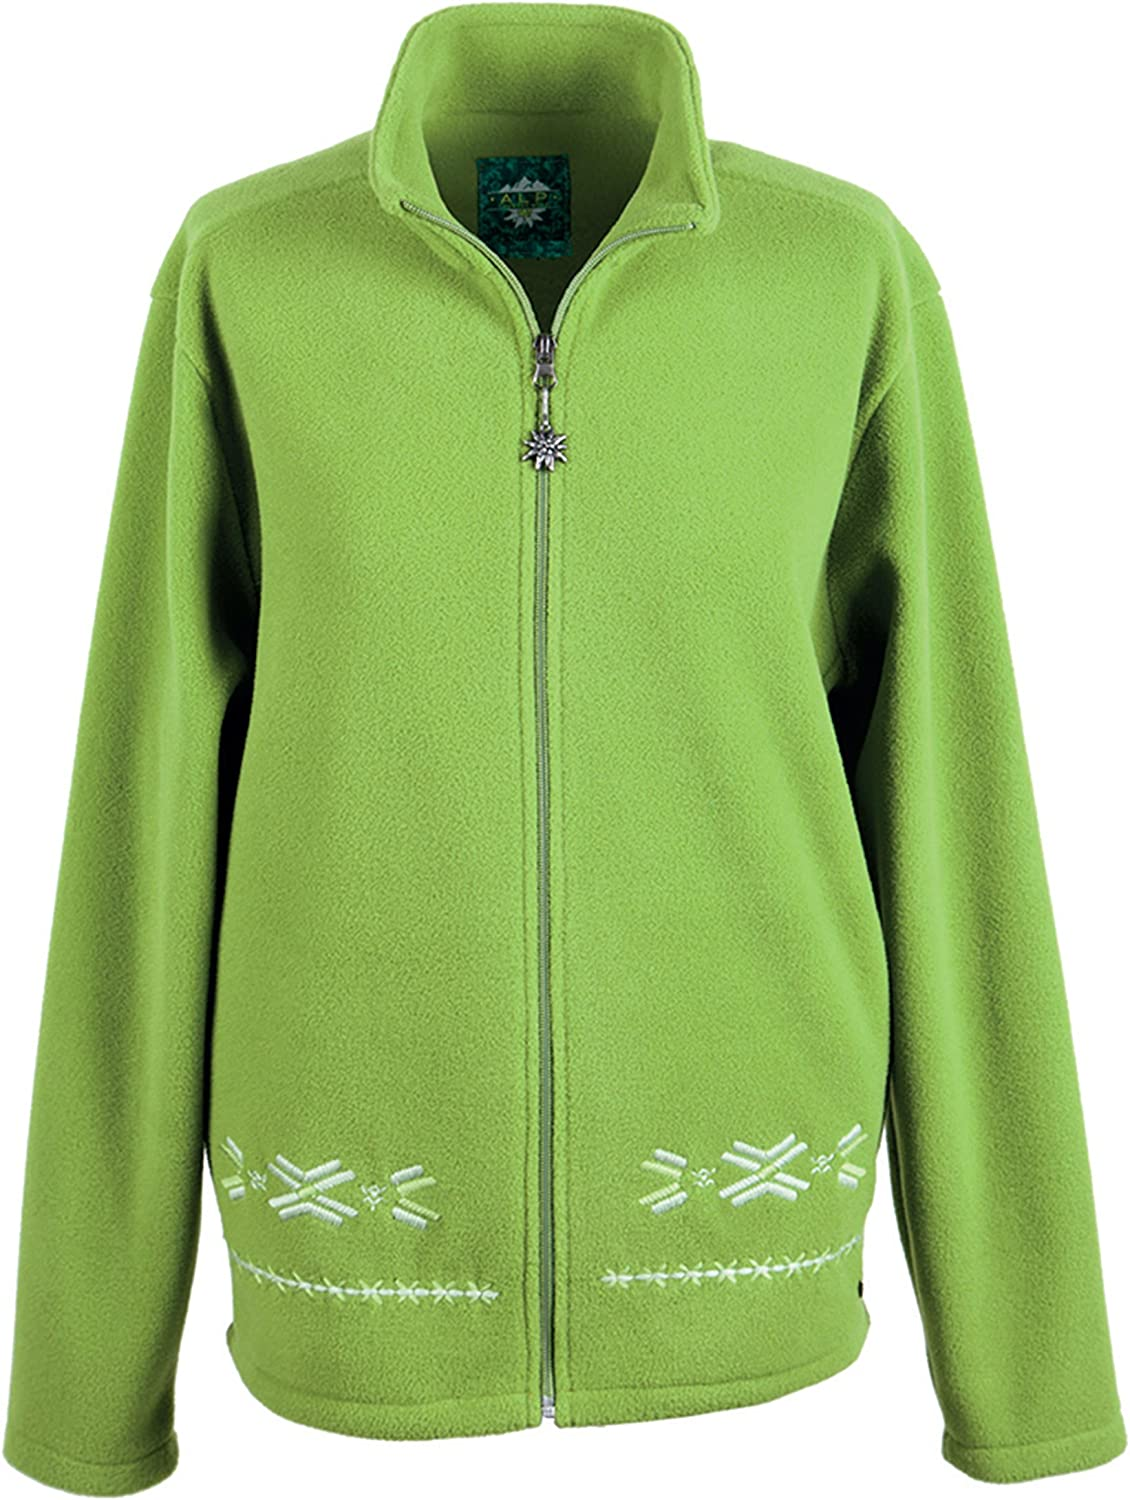 Alp by Brush Ladies Feece Jacket Oversizede with Embroidery